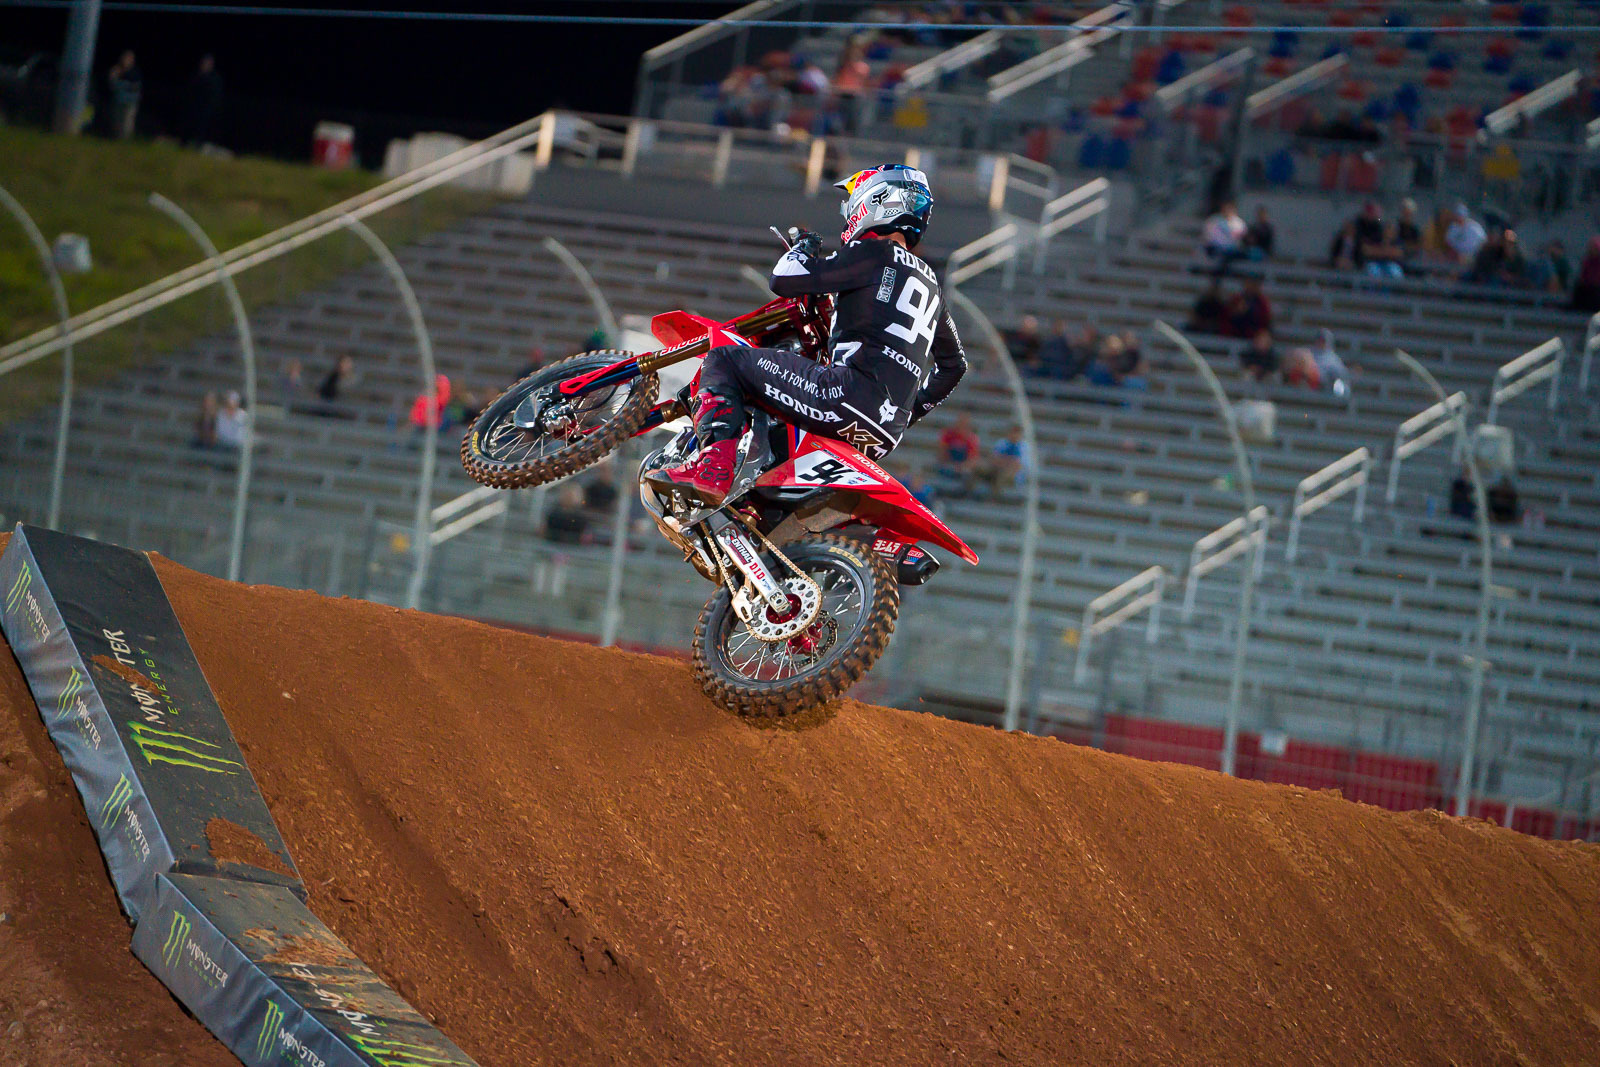 2021-ATLANTA-THREE-SUPERCROSS_KICKSTART_1000